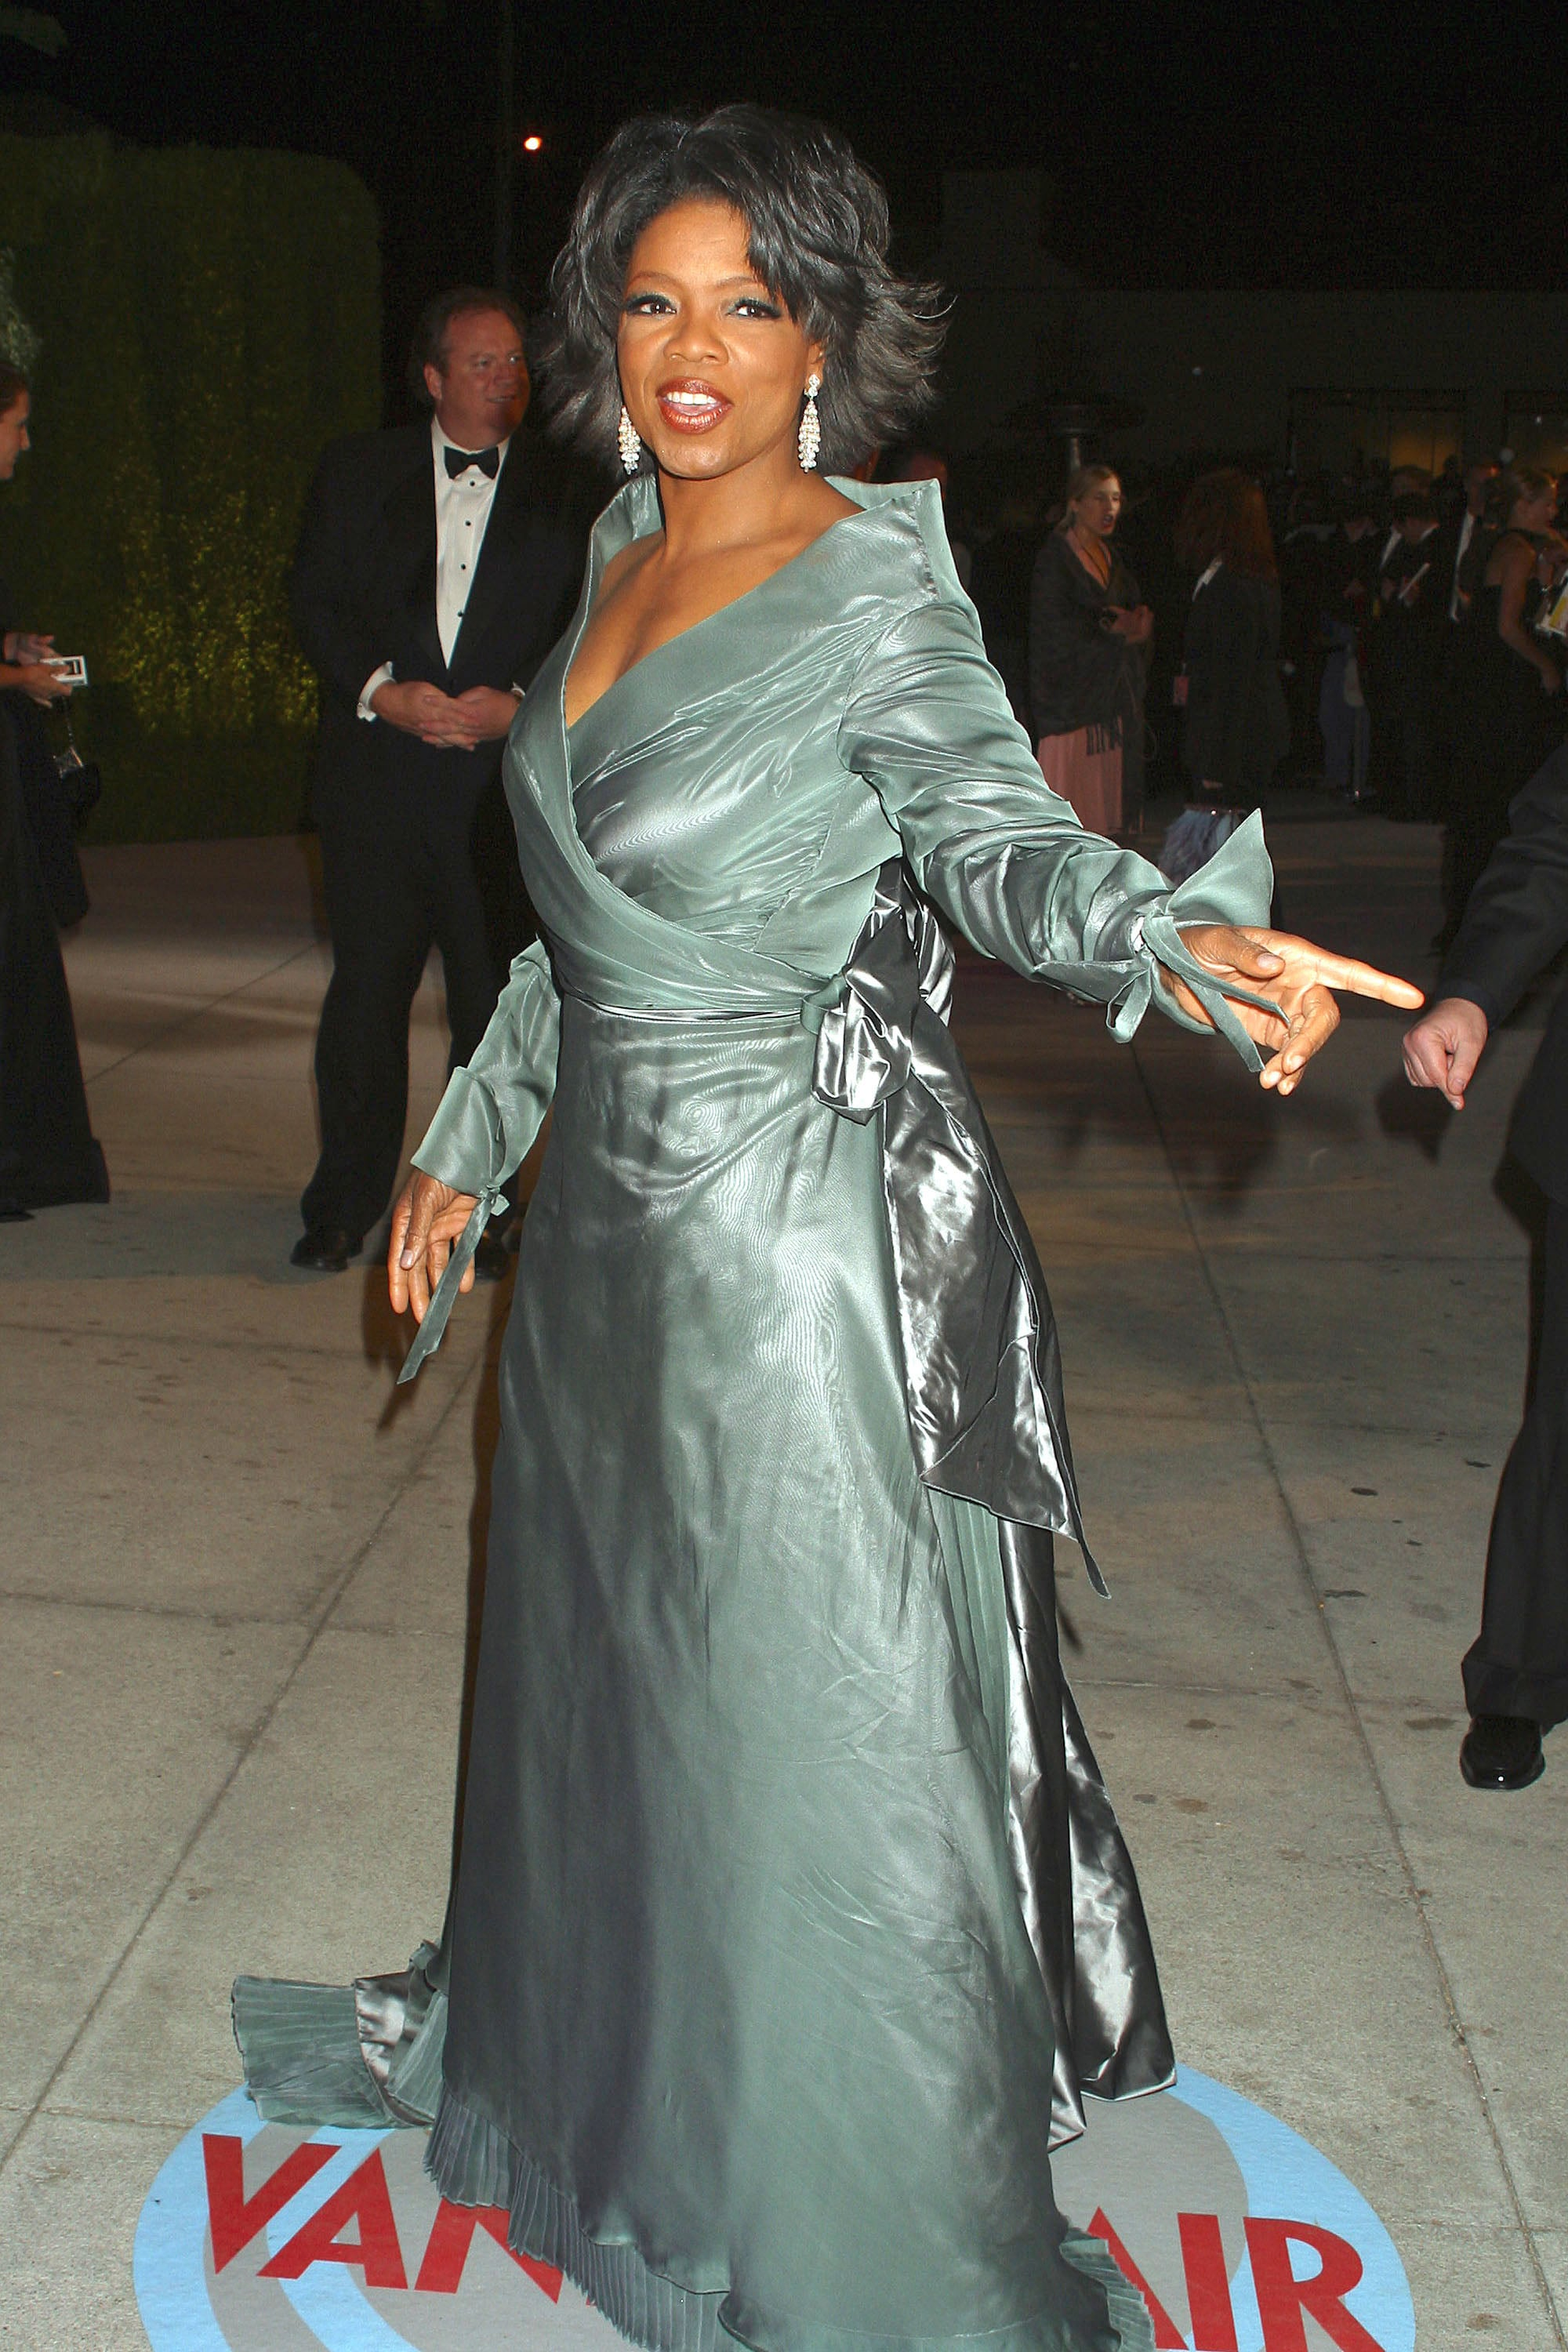 Oprah arrived at the 2004 Vanity Fair Oscar afterparty.